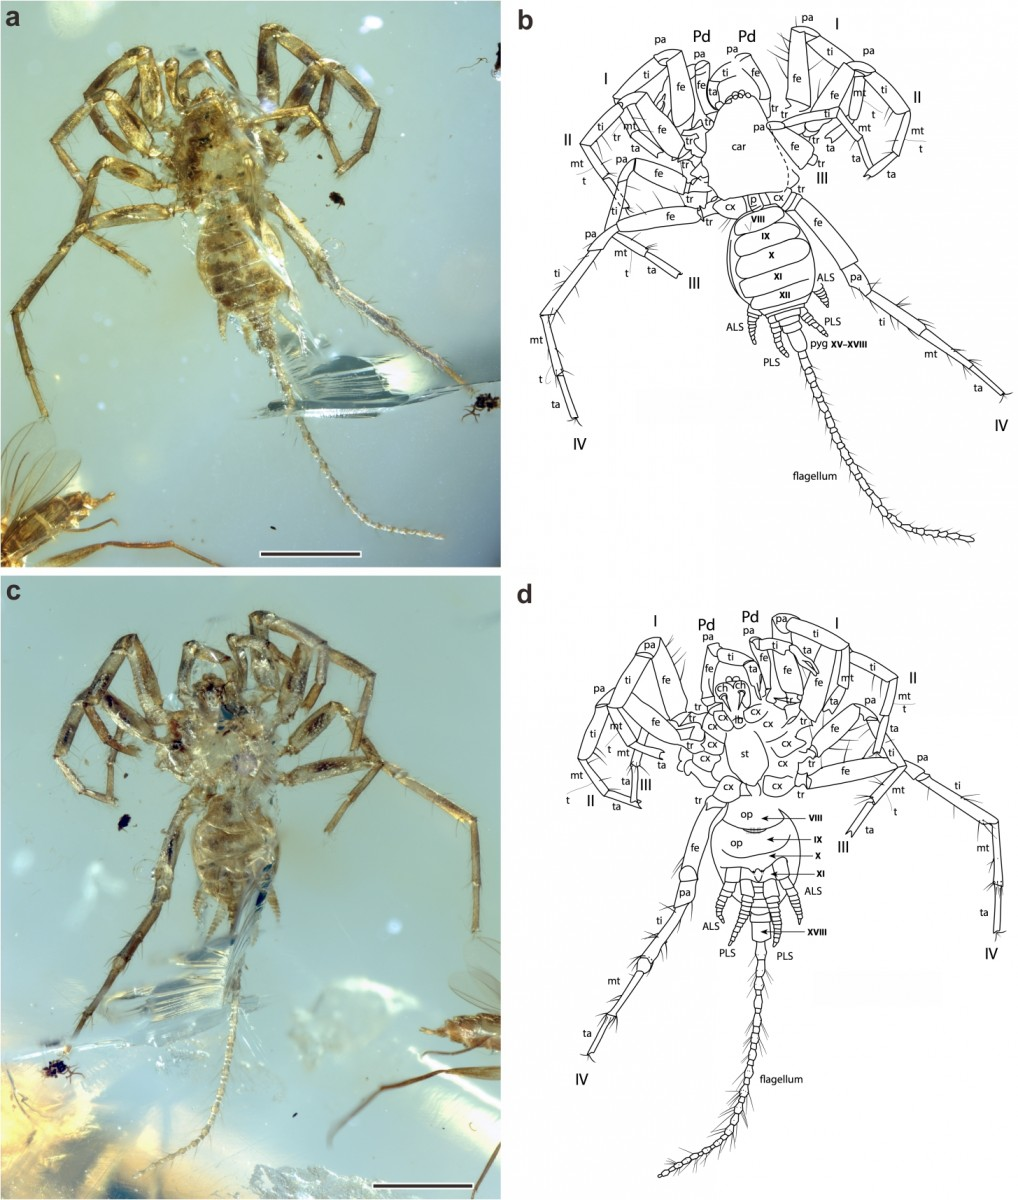 Researchers Discover 100-Million-Year-Old Spider with Tail 'Frozen' in Amber